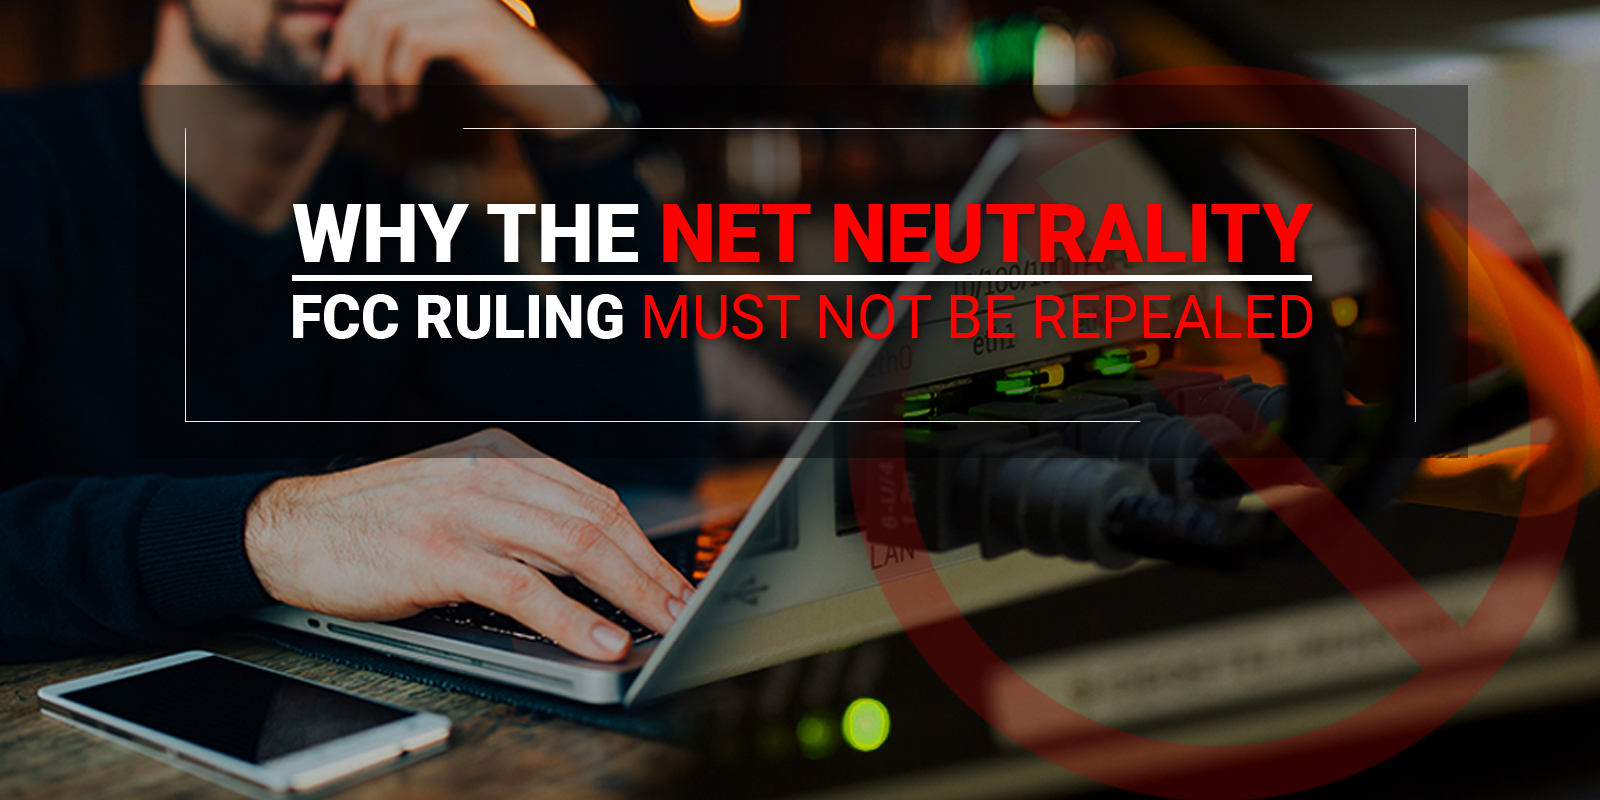 Why The Net Neutrality FCC Ruling Must Not Be Repealed